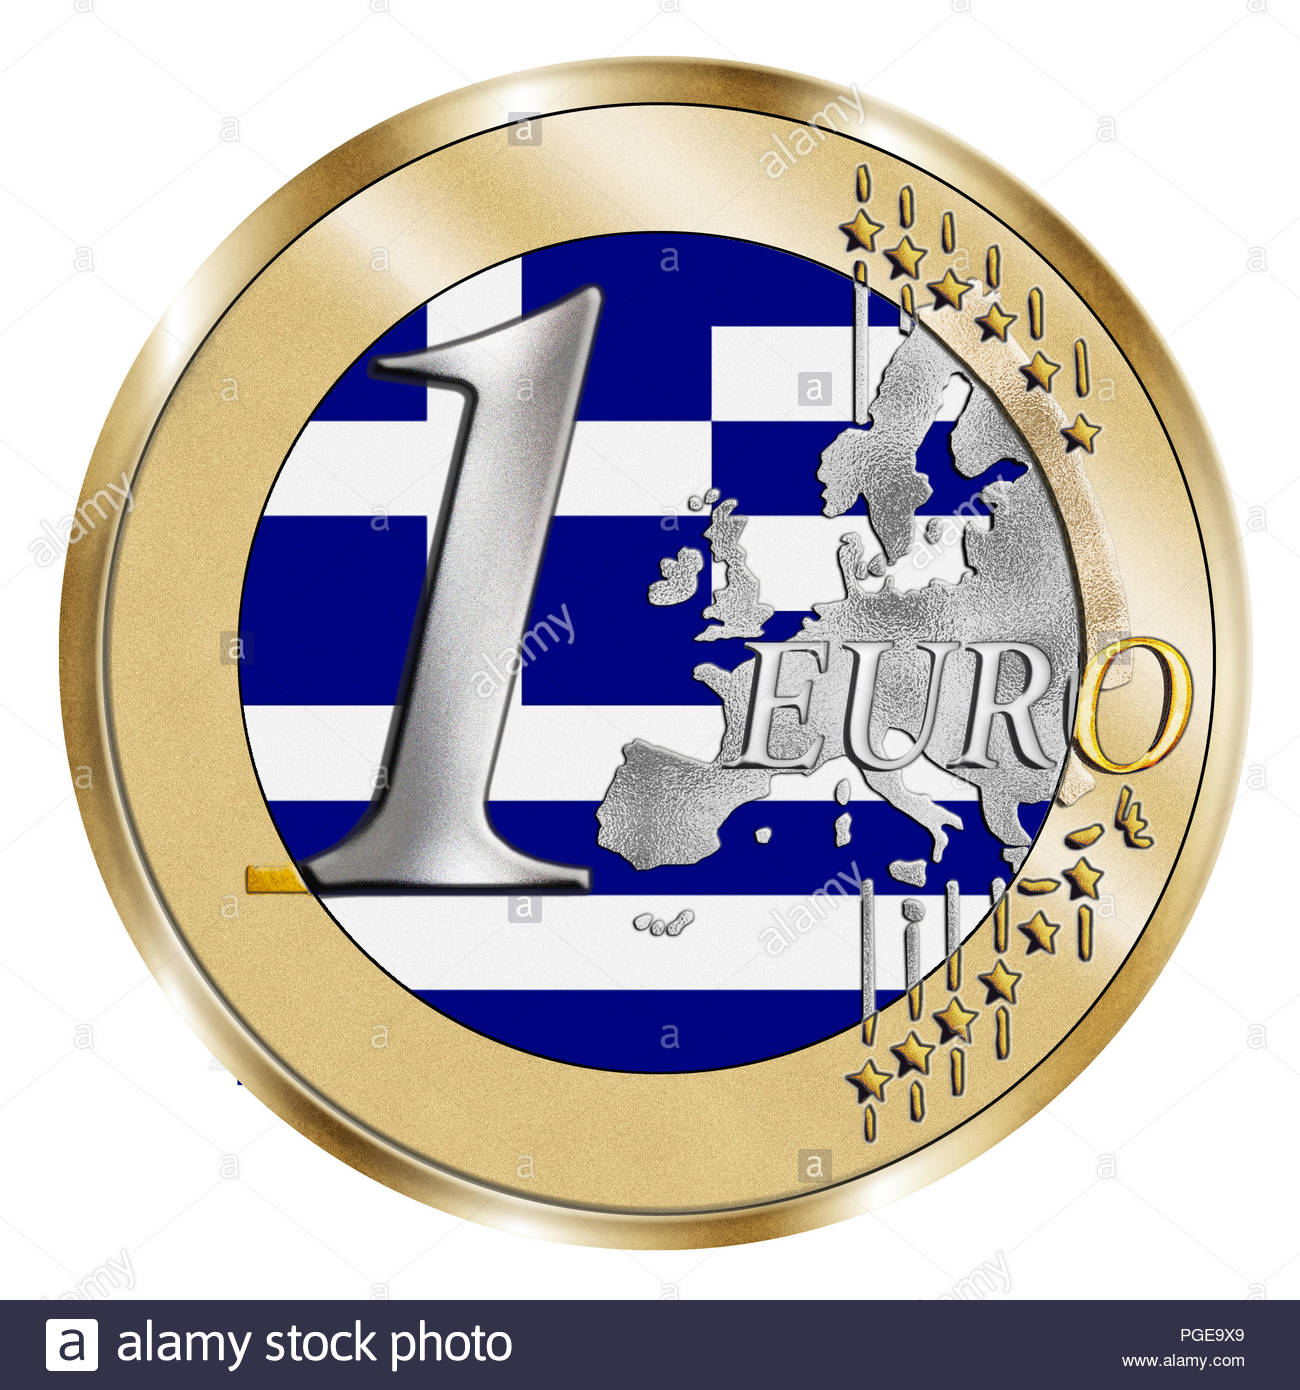 A montage of a stylised 1 Euro coin and the Greek national flag. A Photoshop composite with inlaid grain emphasises the vivid silver and gold effect . - Stock Image